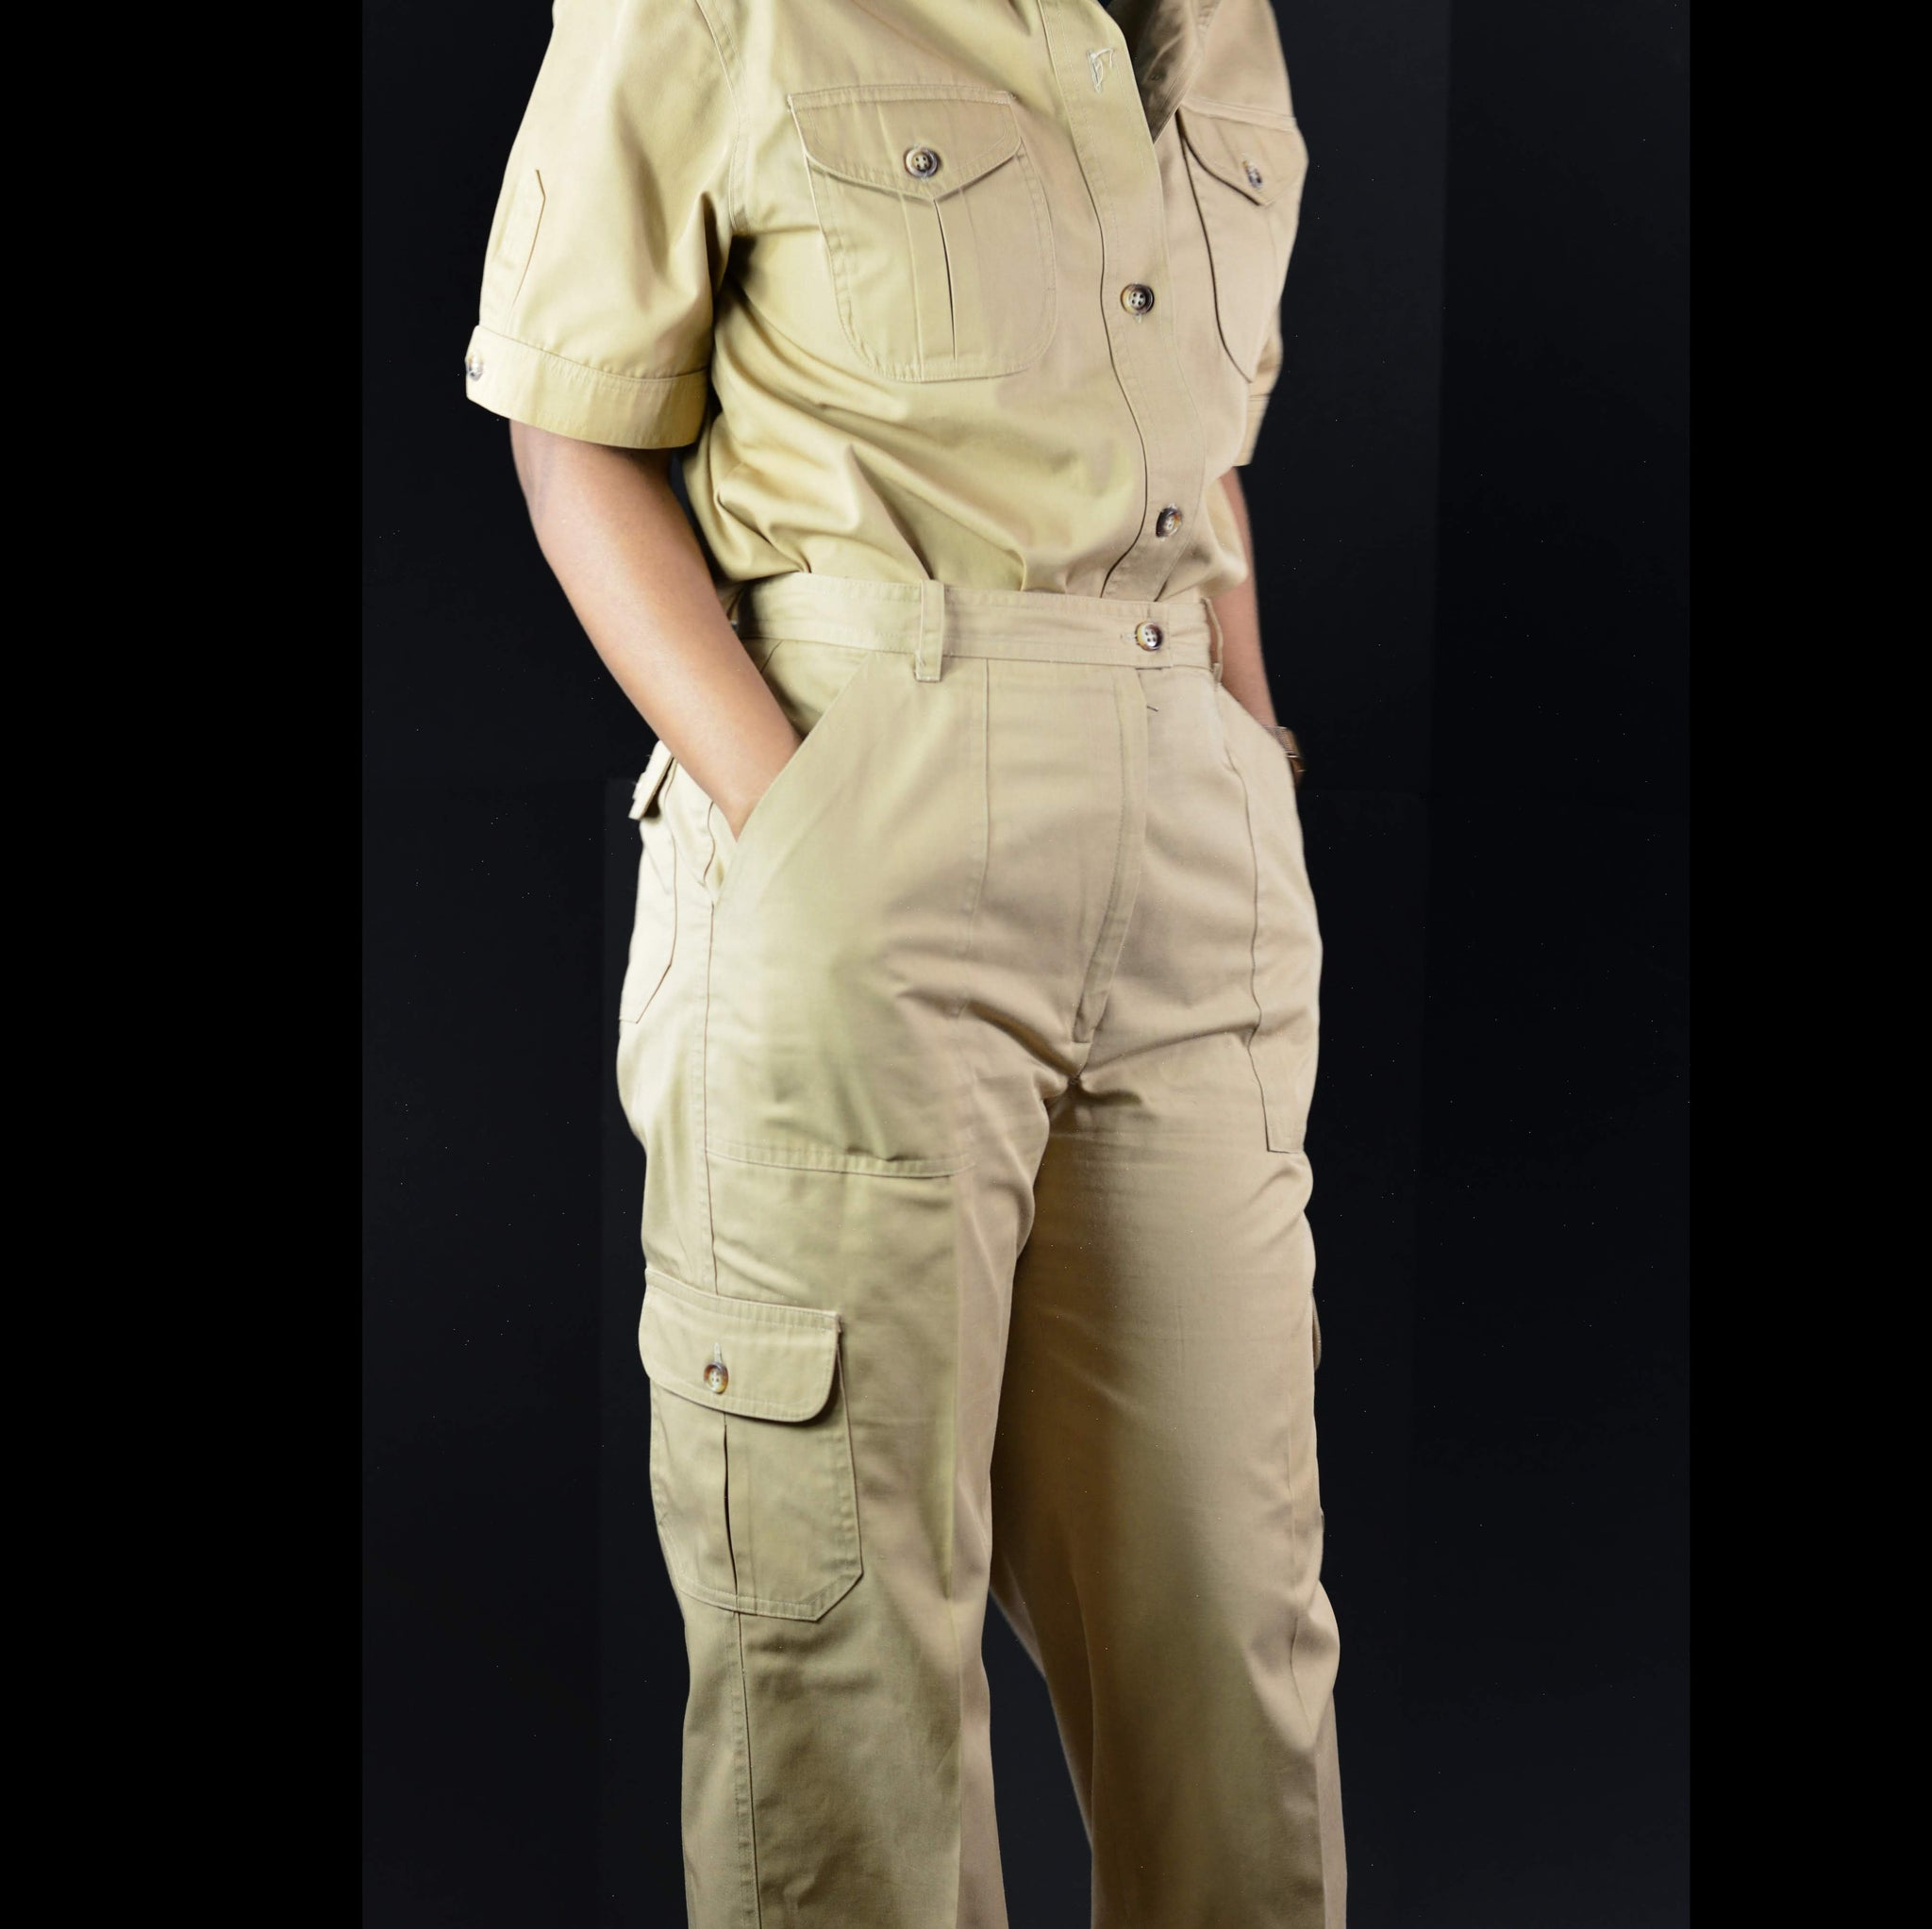 Vintage Utility CoOrd Set Cargo Safari Khaki Breckenridge Pants Shirt Top Size Medium